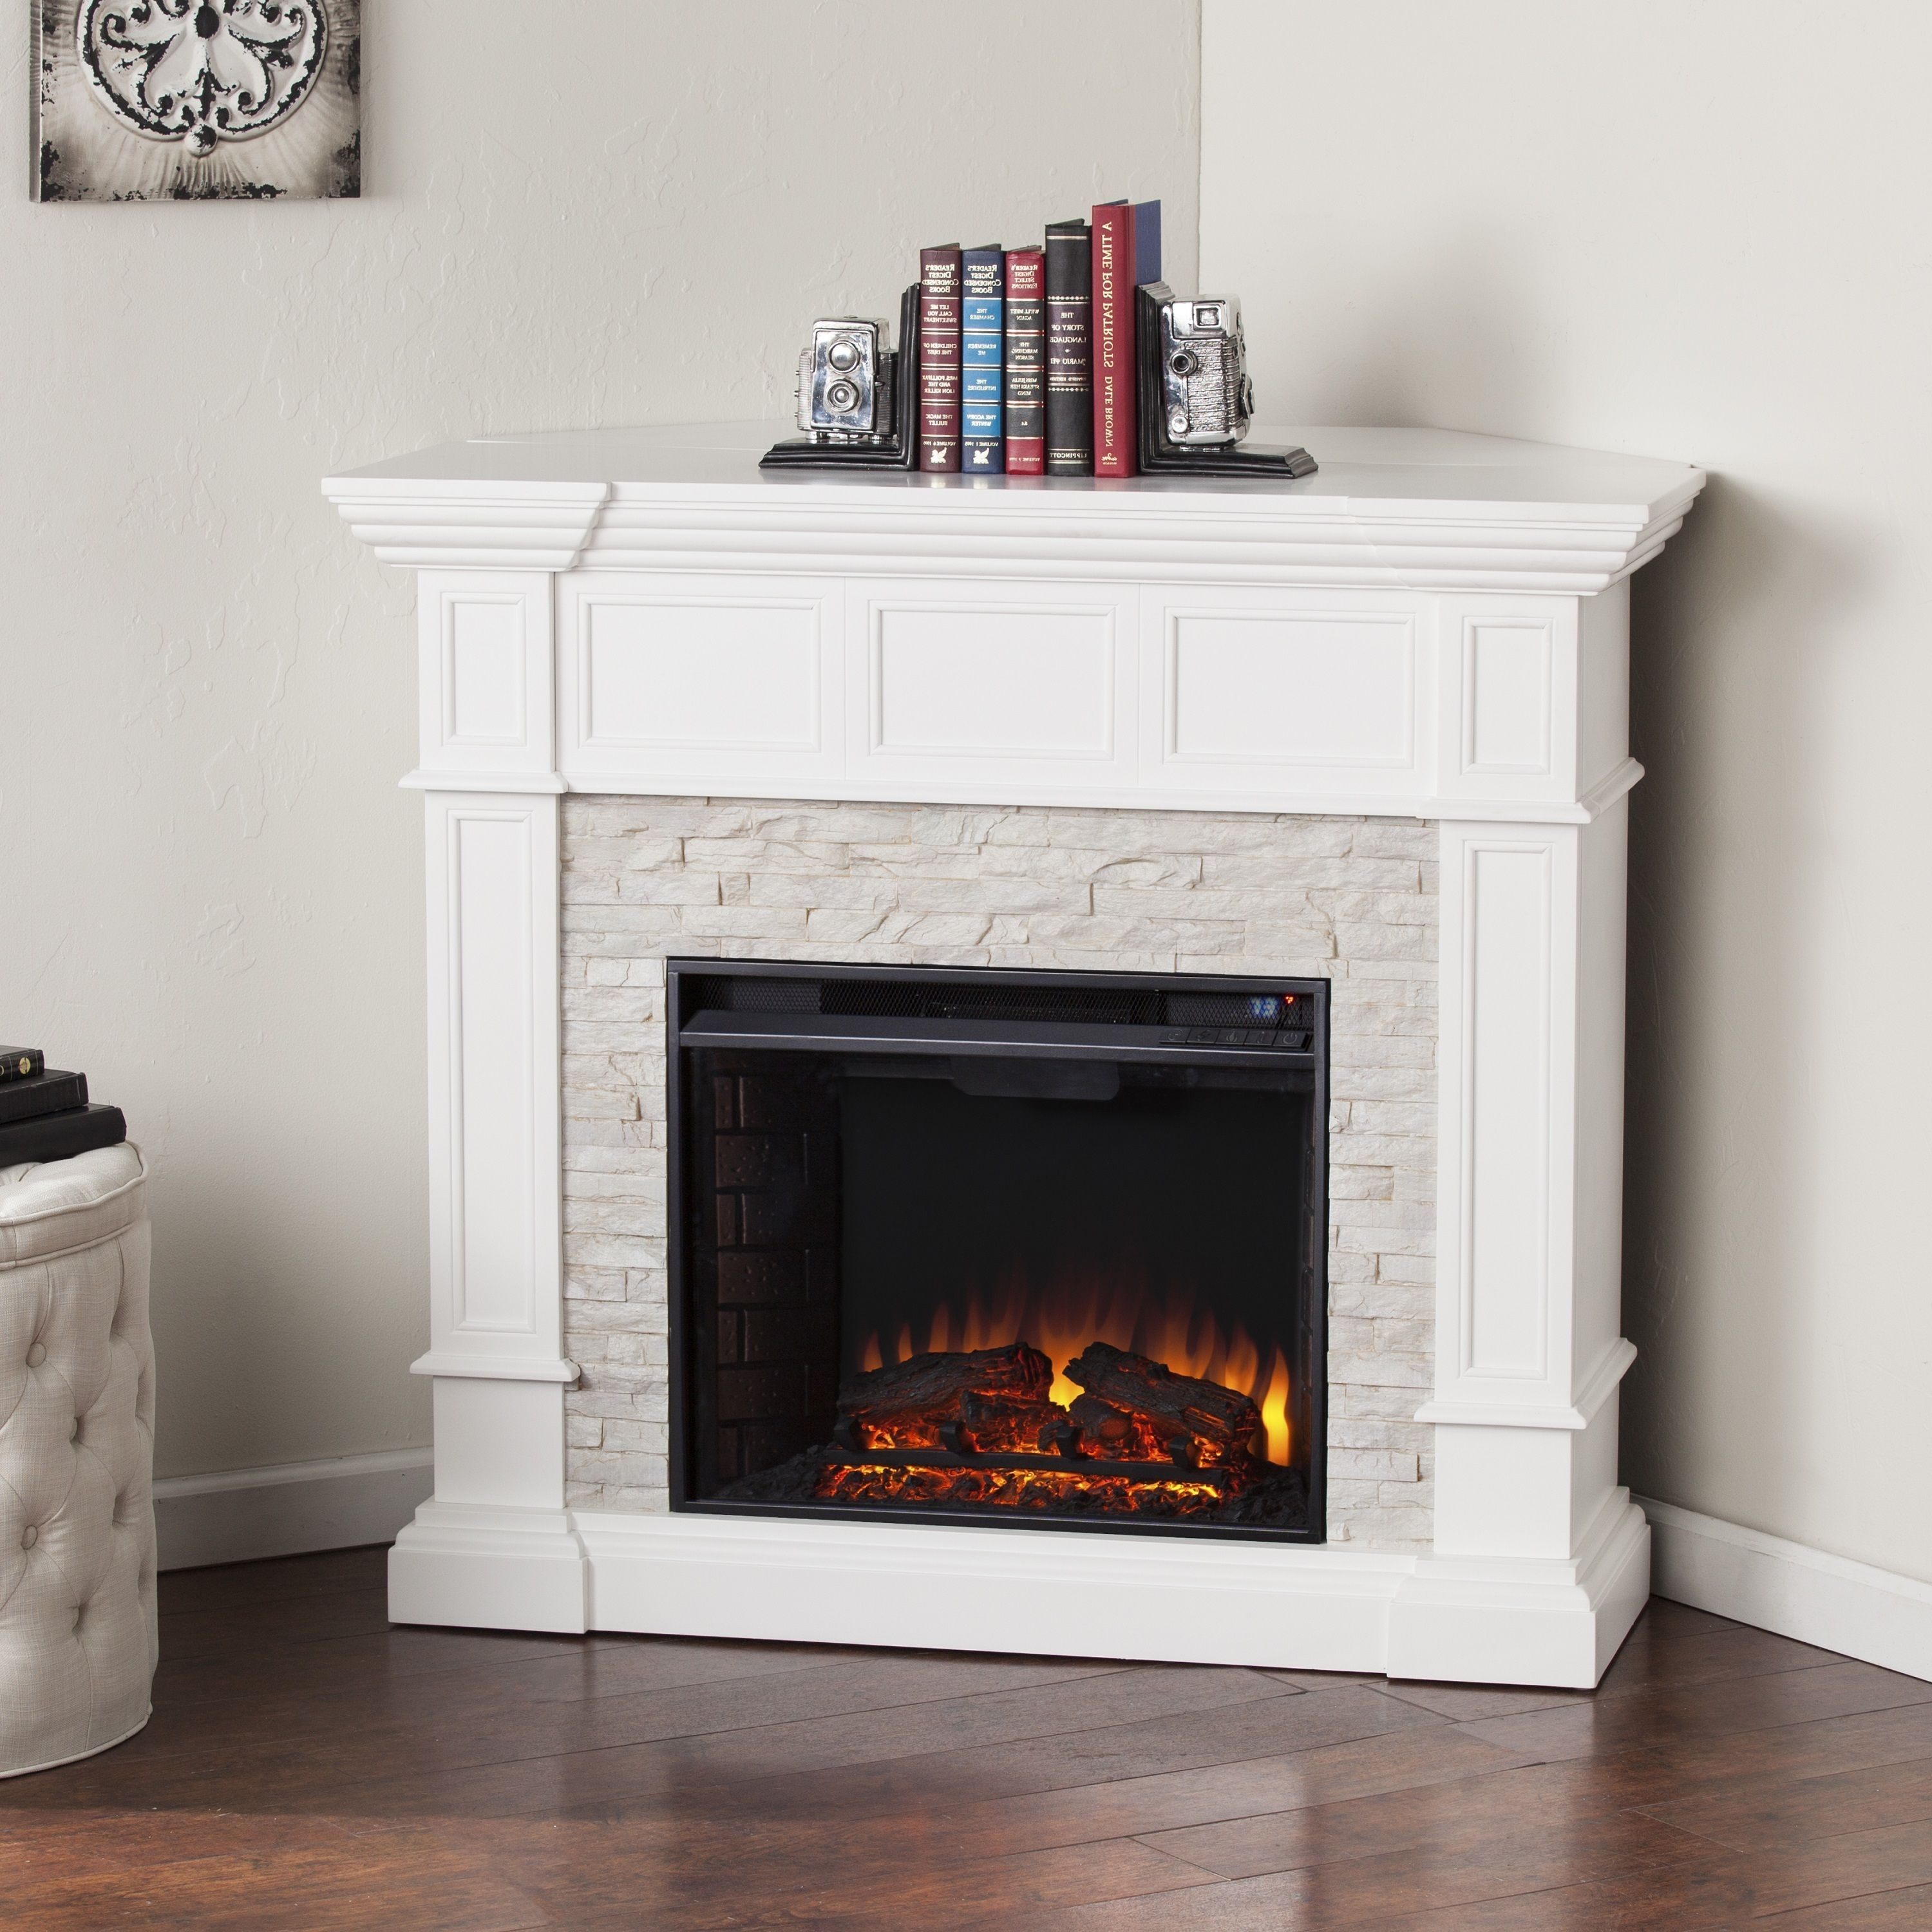 White Corner Fireplace Beautiful 33 Modern and Traditional Corner Fireplace Ideas Remodel